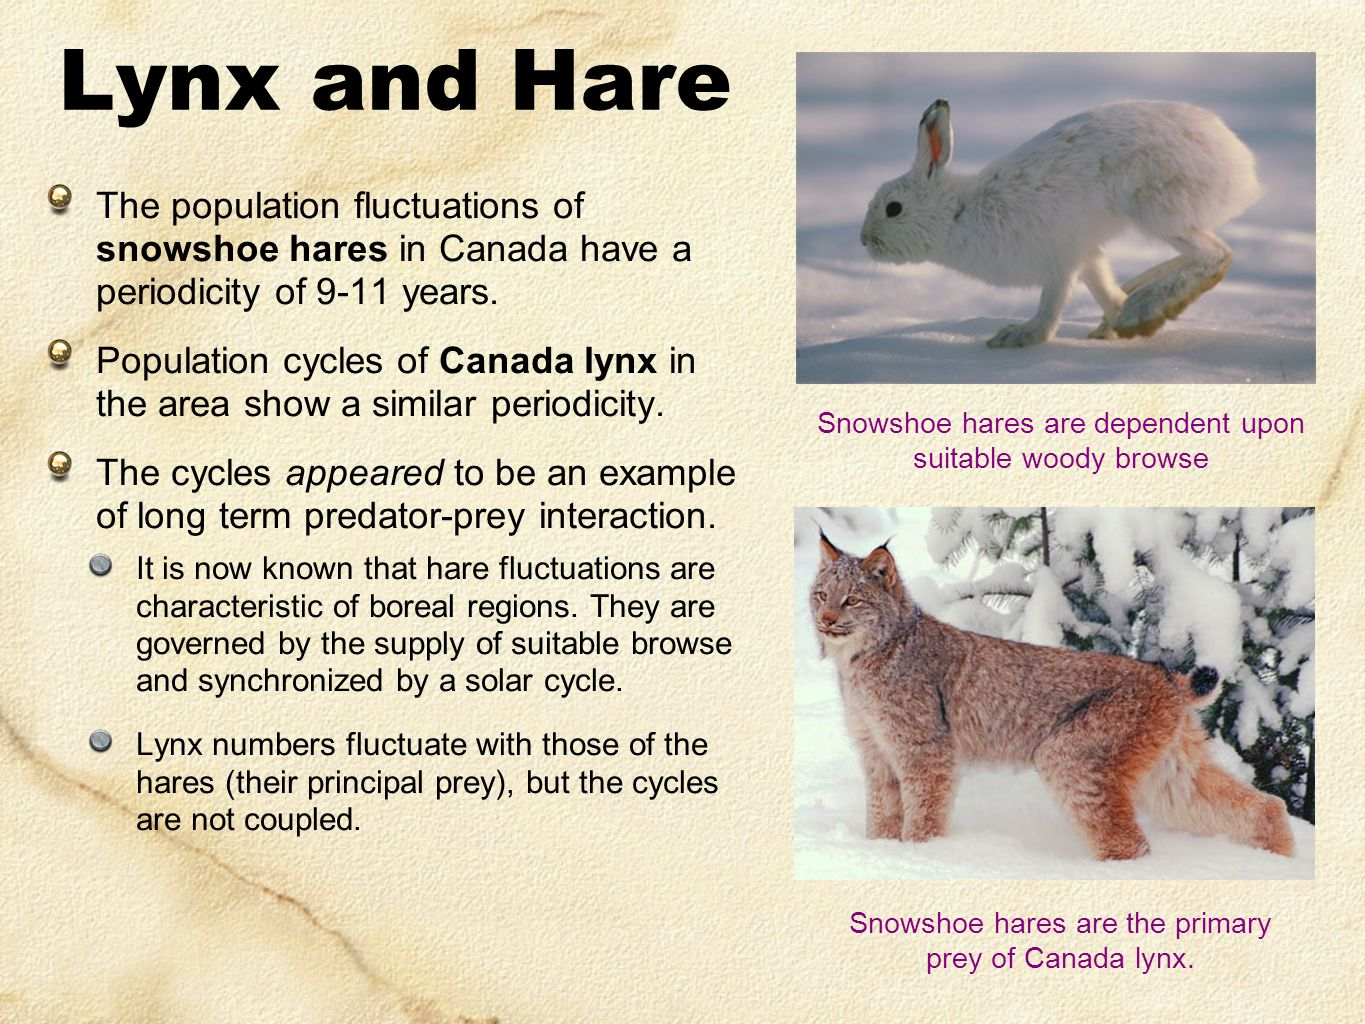 The population fluctuations of snowshoe hares in Canada have a periodicity of 9-11 years. Population cycles of Canada lynx in the area show a similar